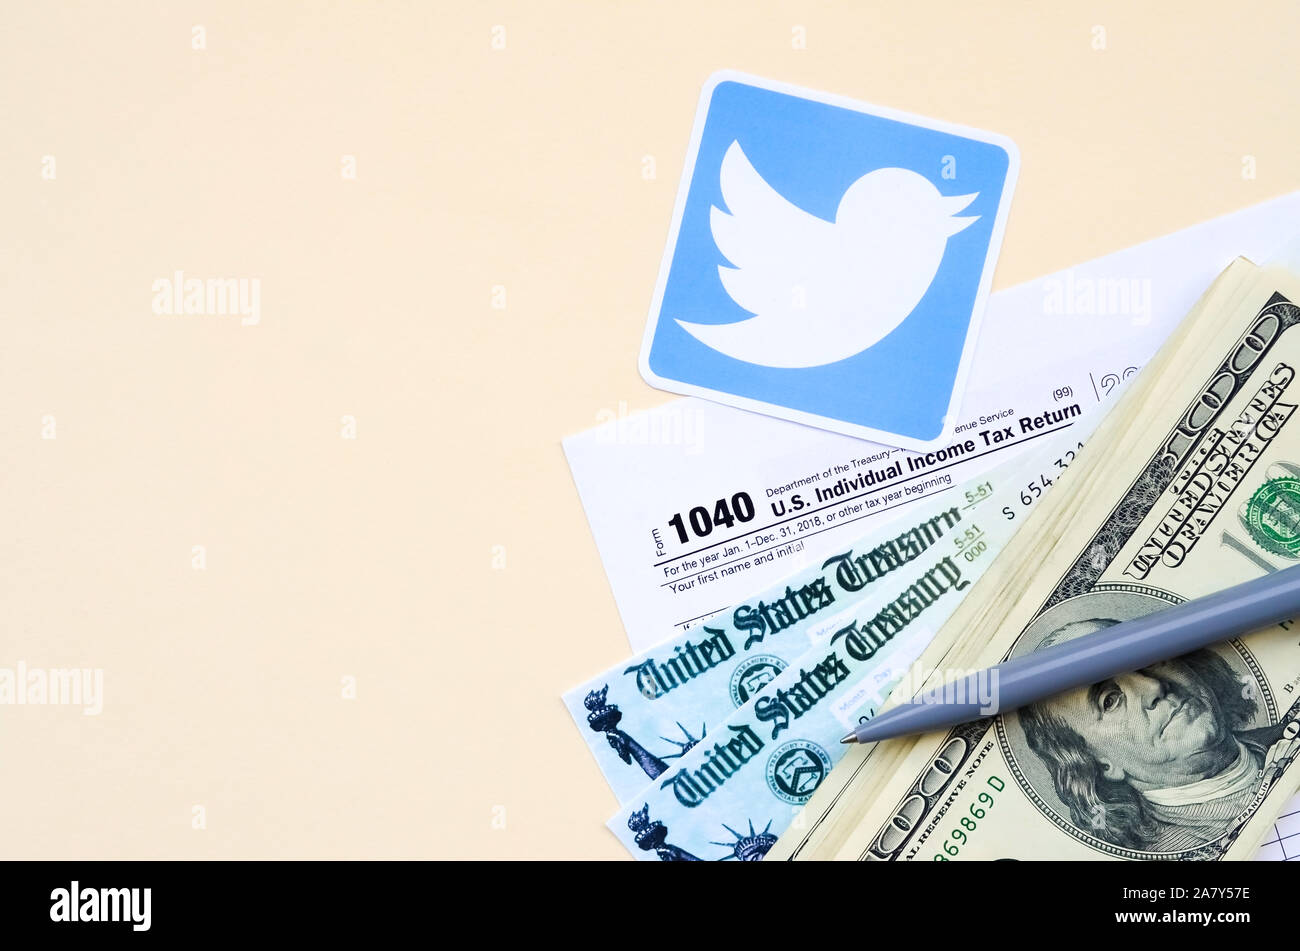 KHARKOV, UKRAINE - OCTOBER 3, 2019: Twitter printed logo lies with 1040 Individual Income tax return form with Refund Check and hundred dollar bills o Stock Photo